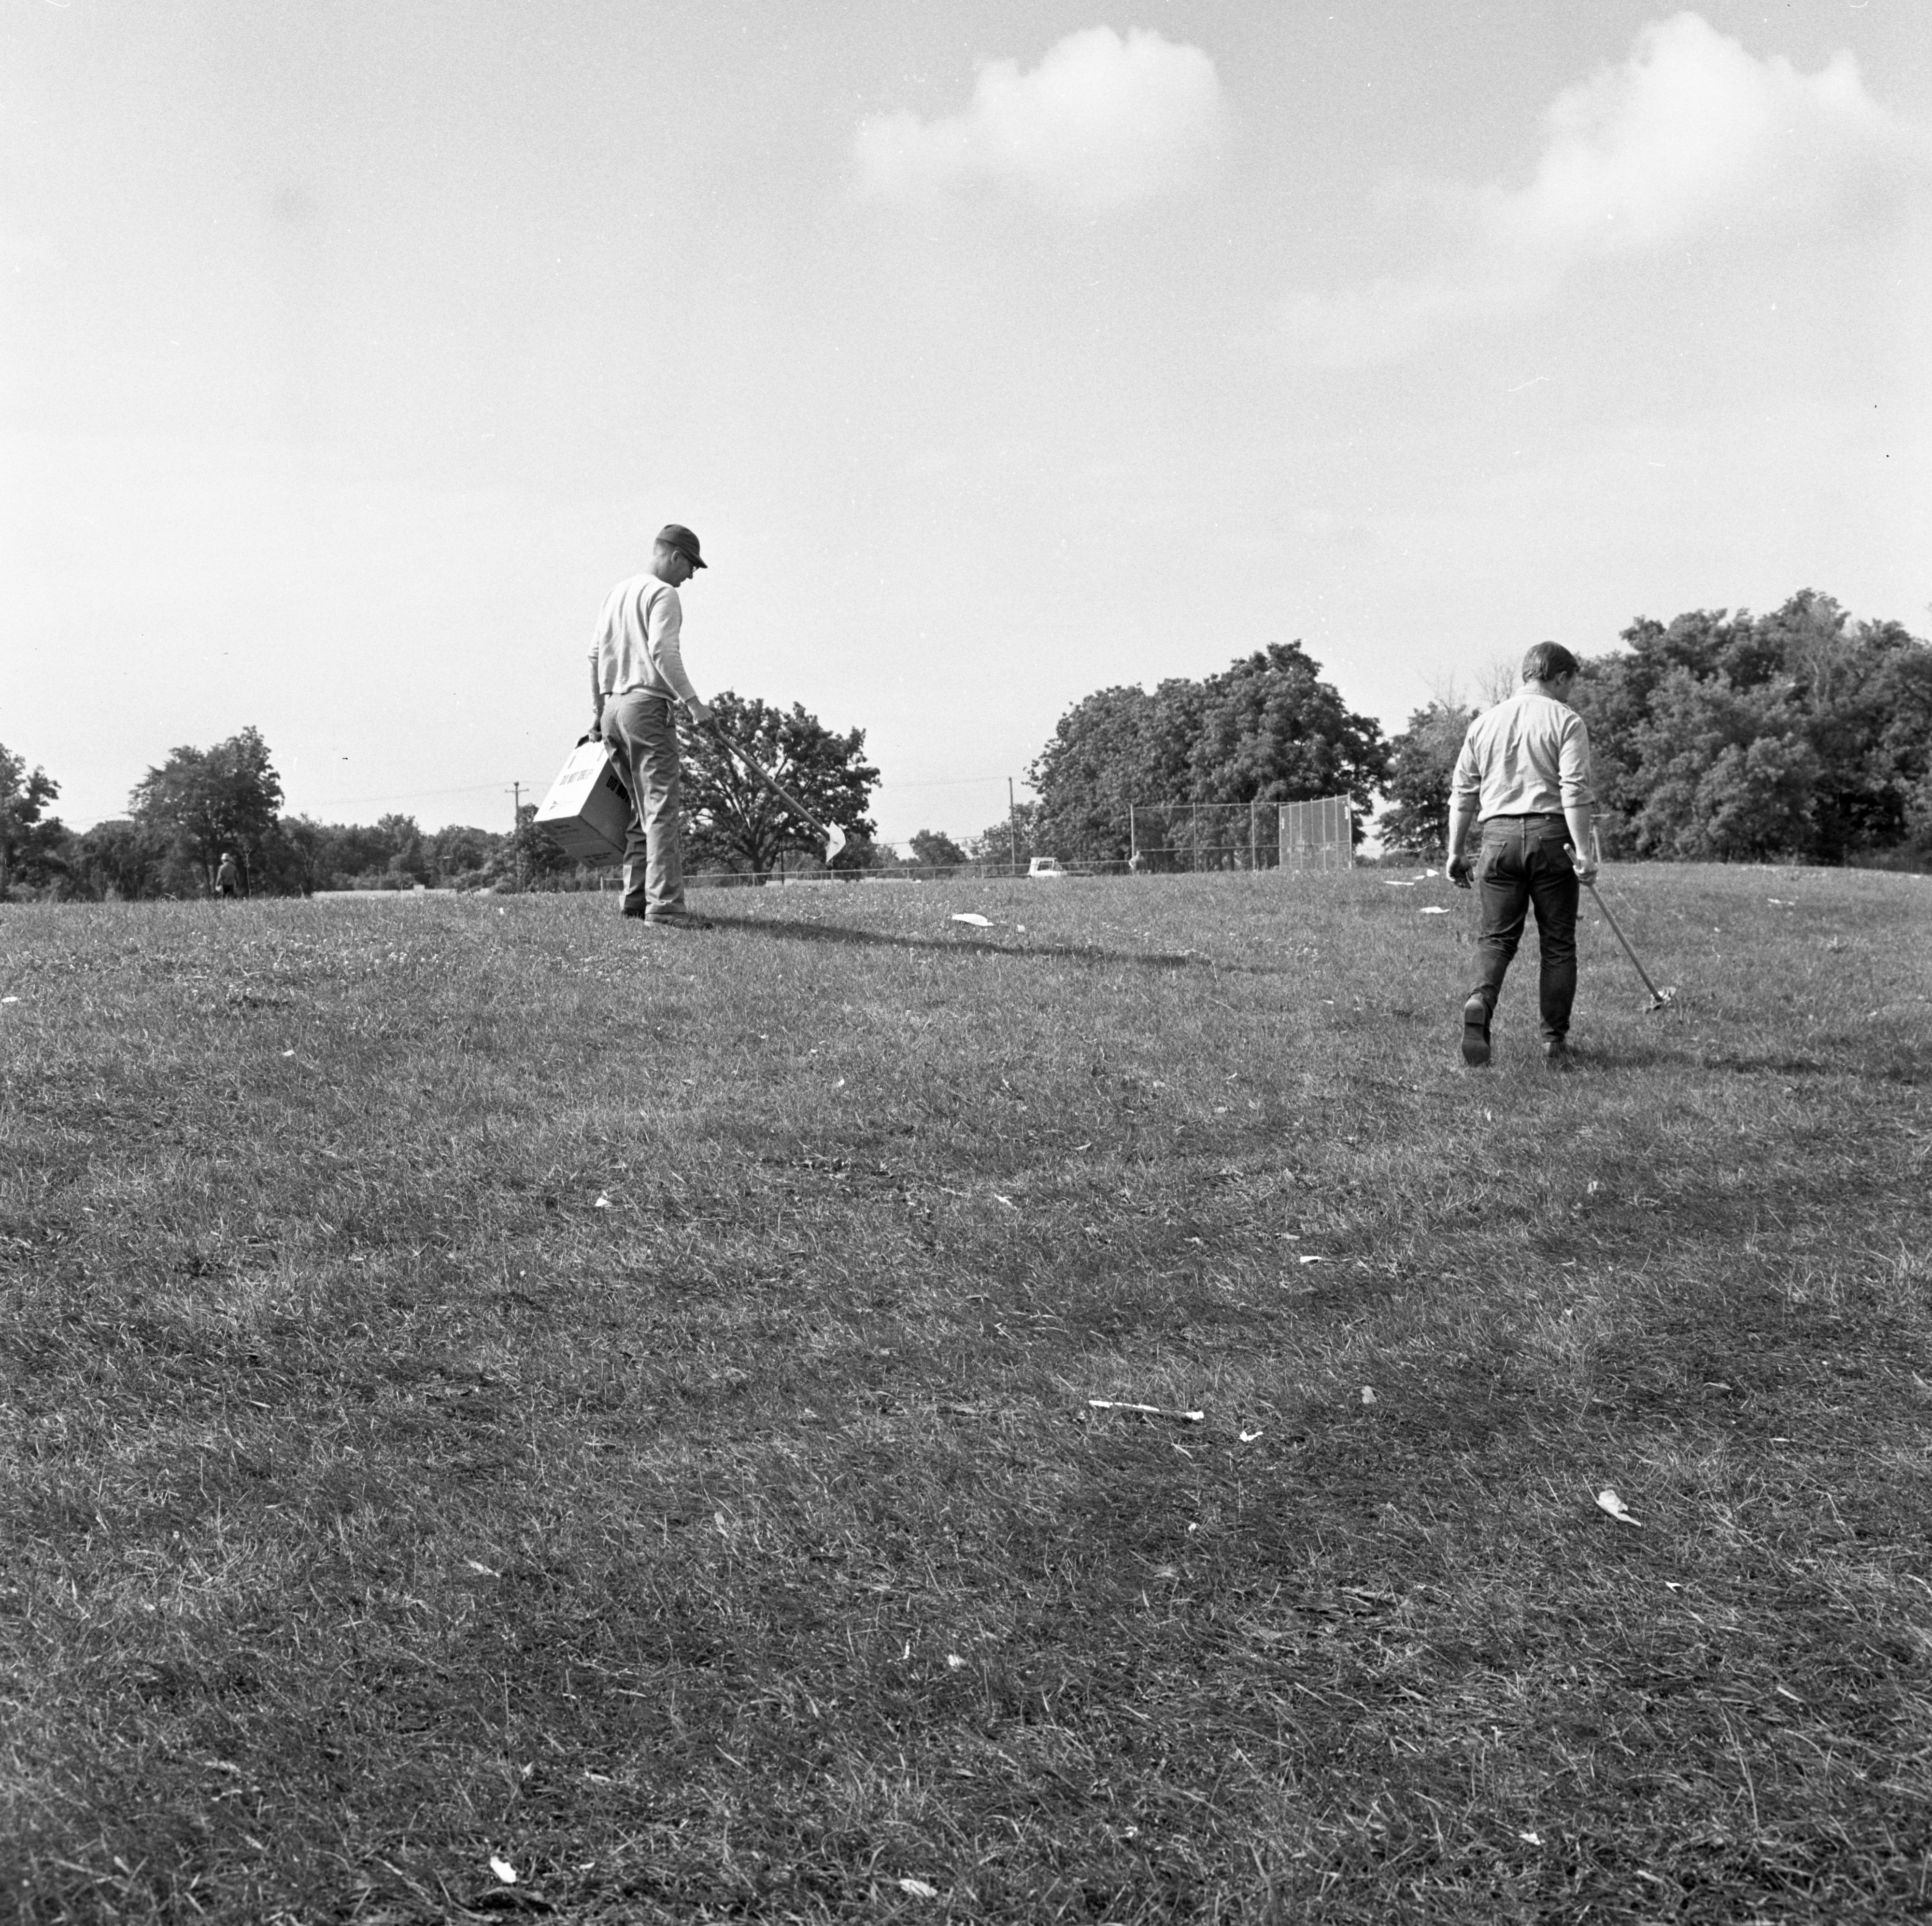 City Workers Clean Up Buhr Park The Morning After Fireworks Show - July 5, 1967 image